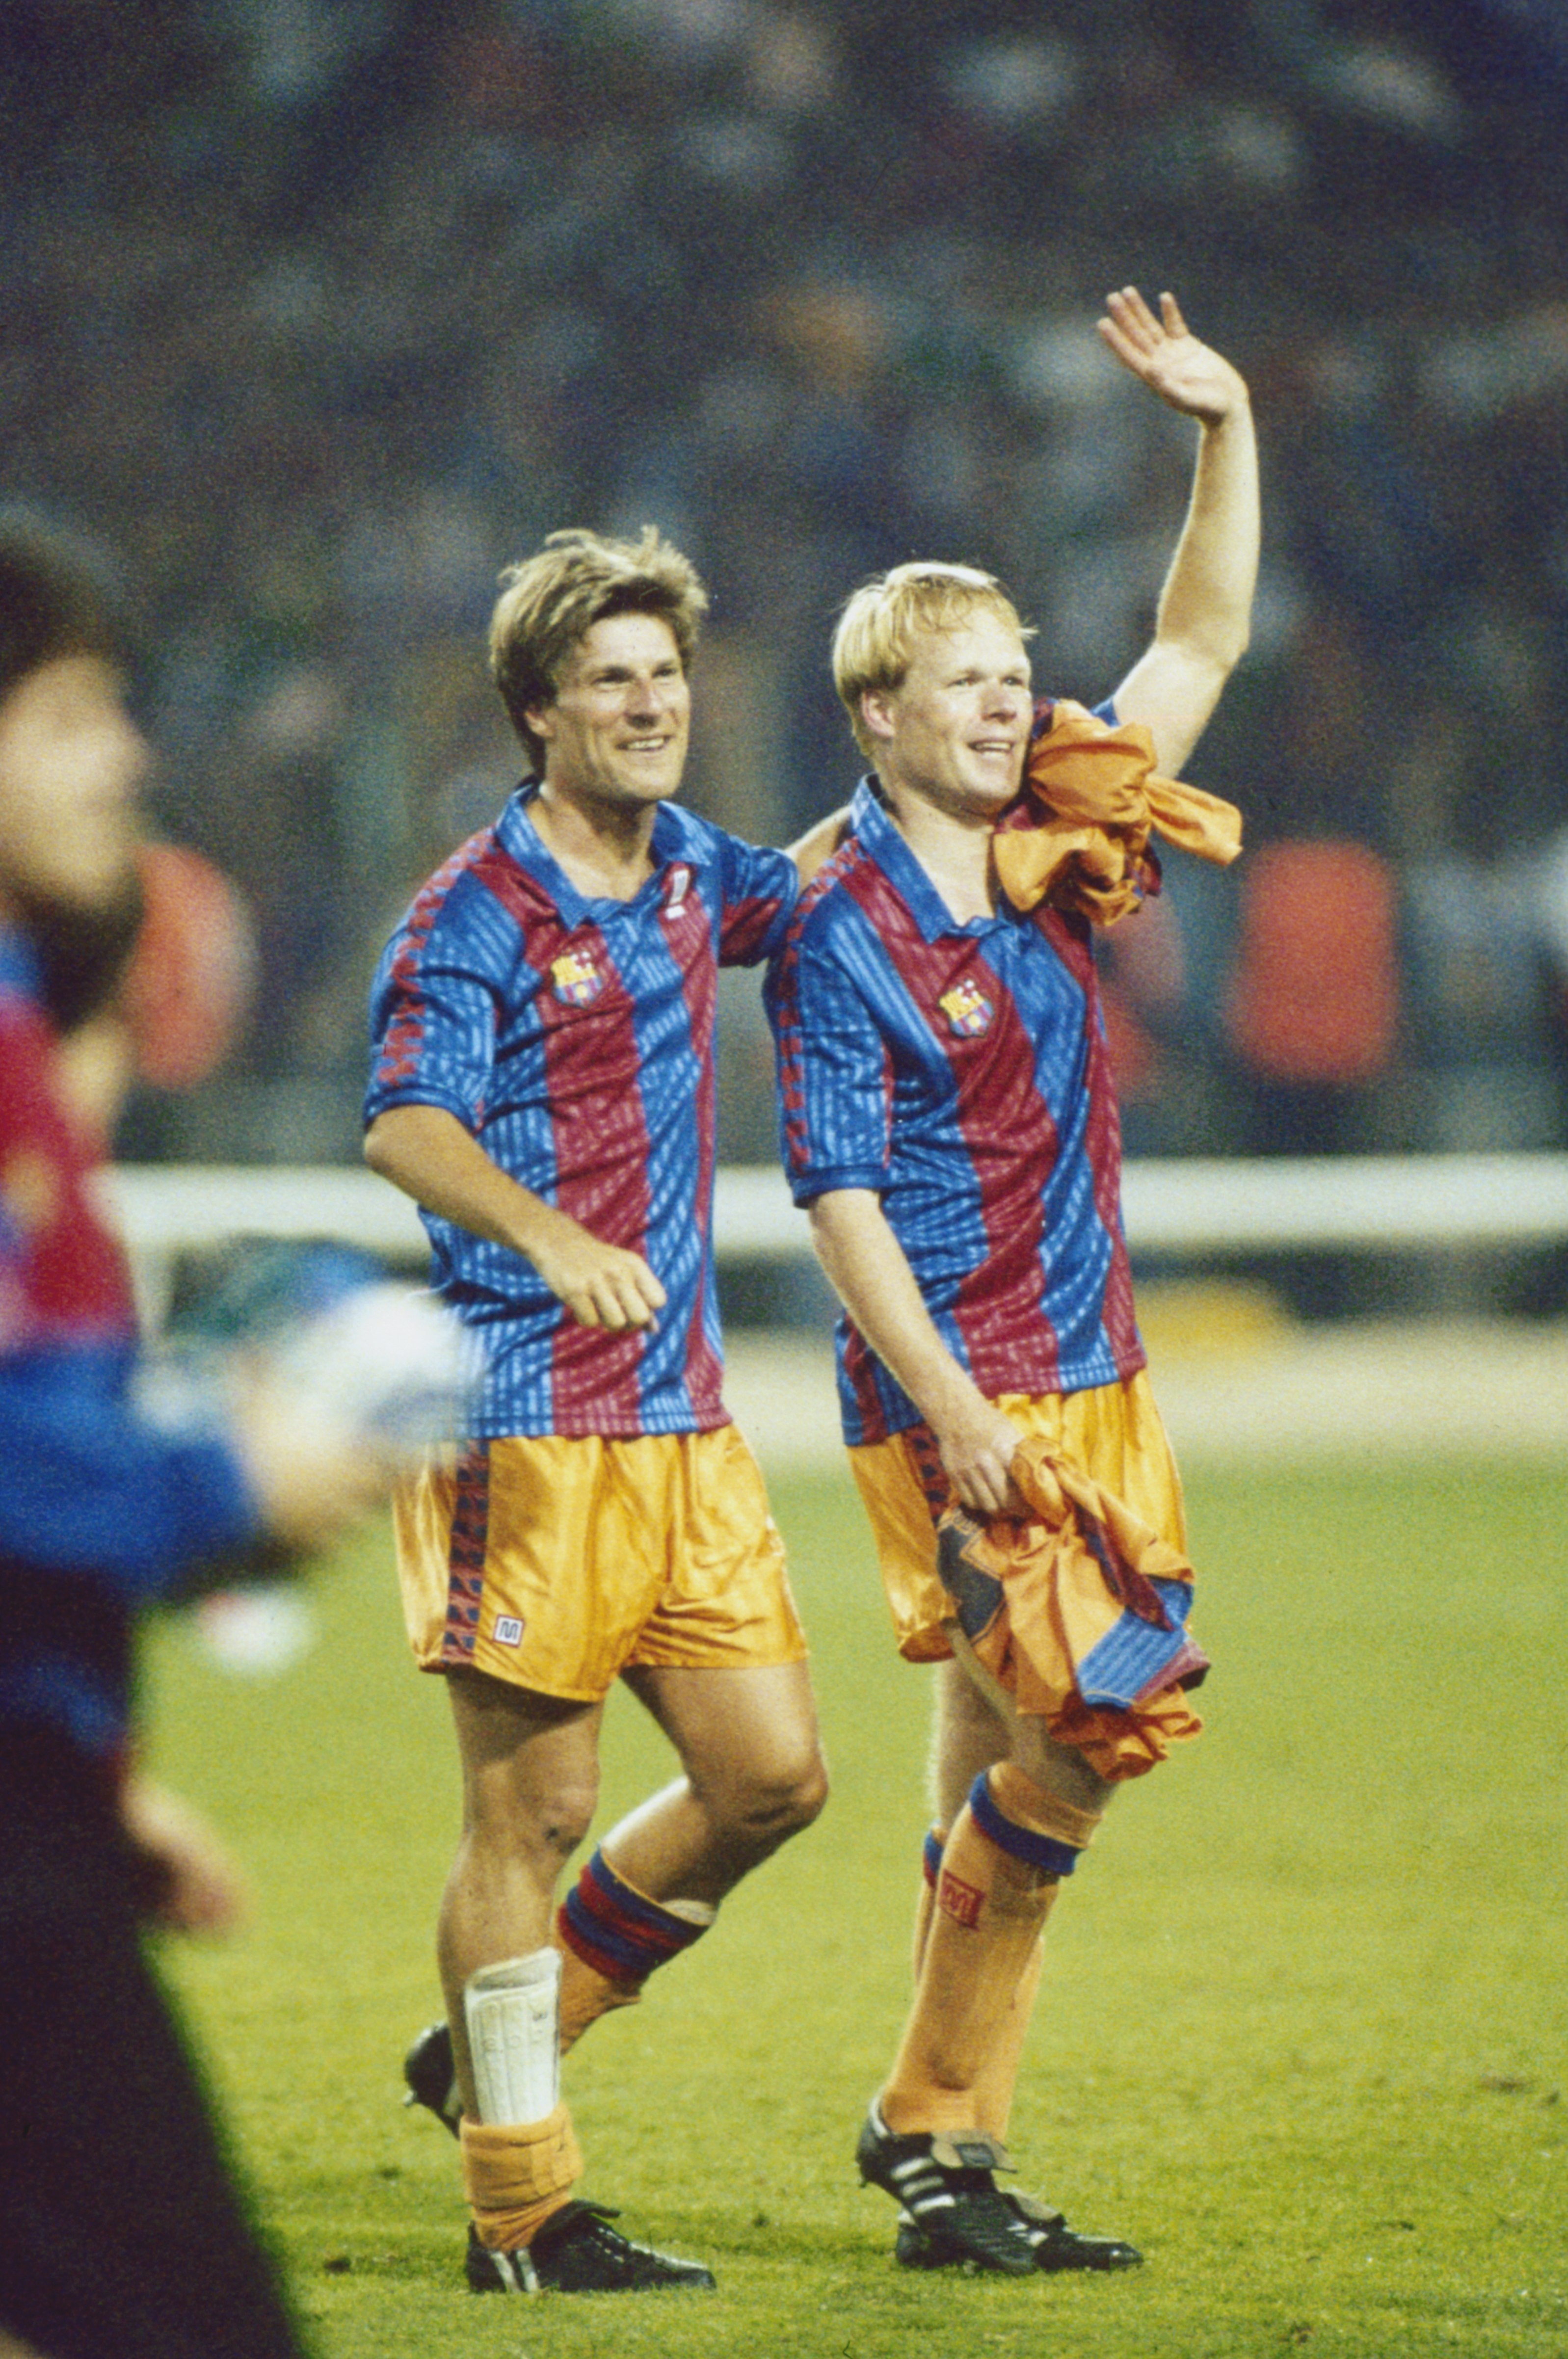 Ronald Koeman celebrates with Barcelona team-mate Michael Laudrup after winning the European Cup in 1992